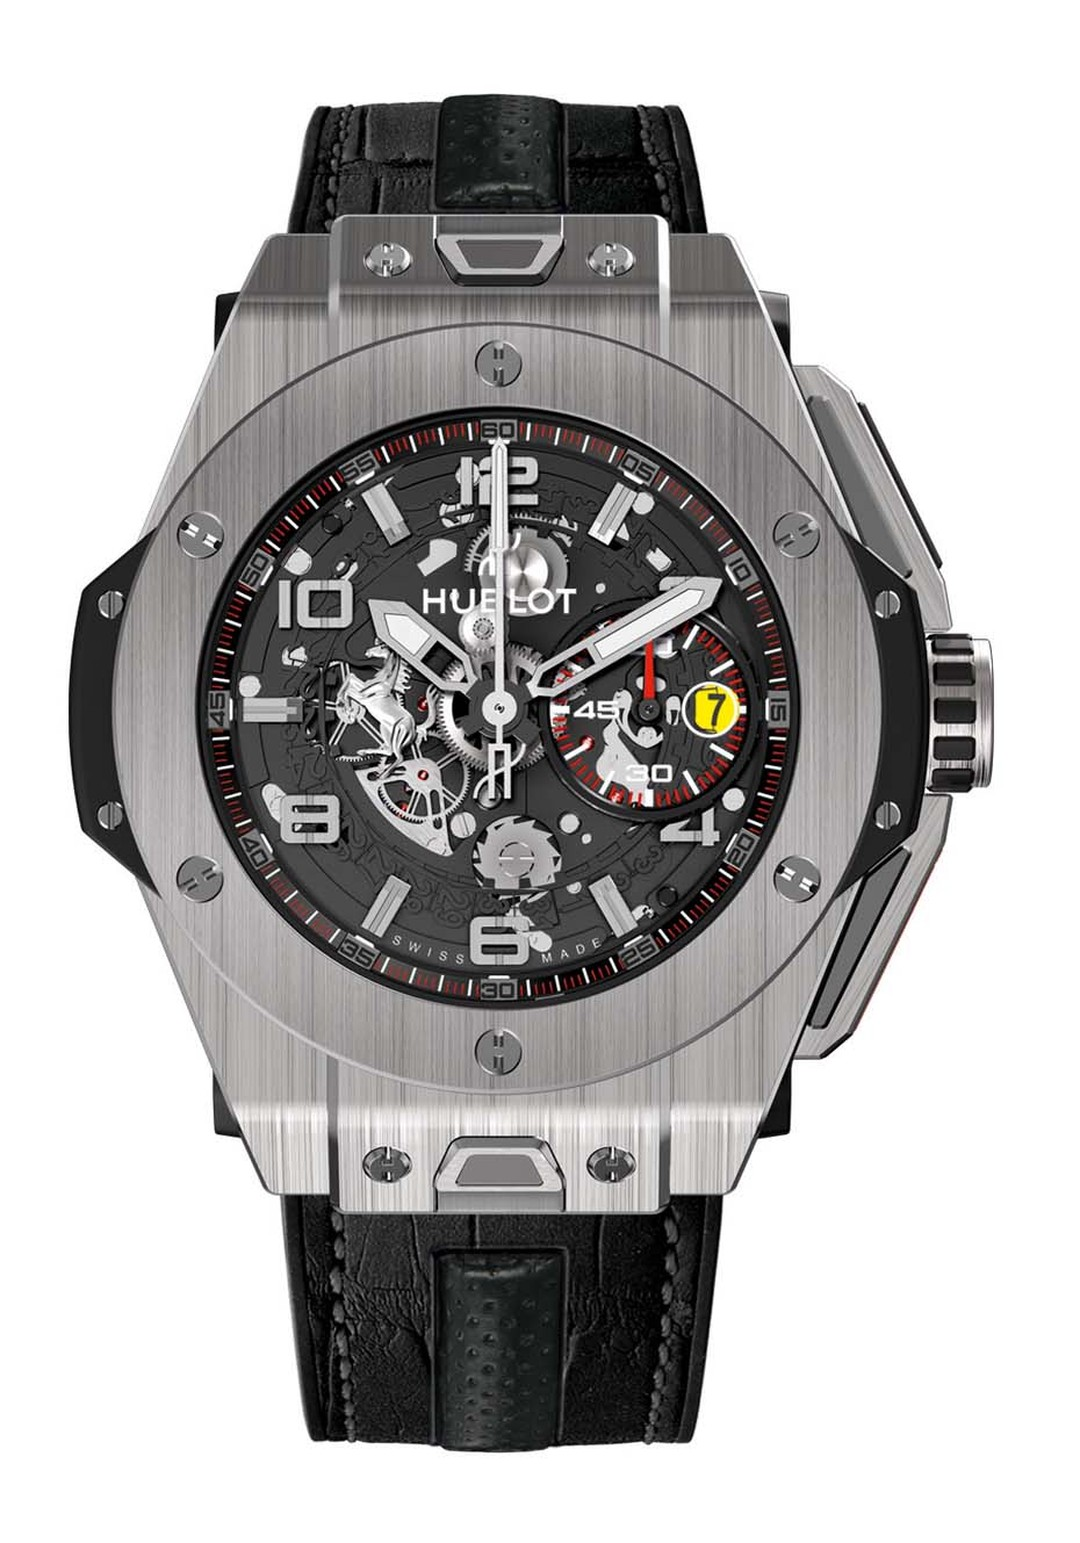 Hublot's collection of Big Bang Ferrari watches feature a strap change system that is inspired by the safety belts in Ferrari sports cars.